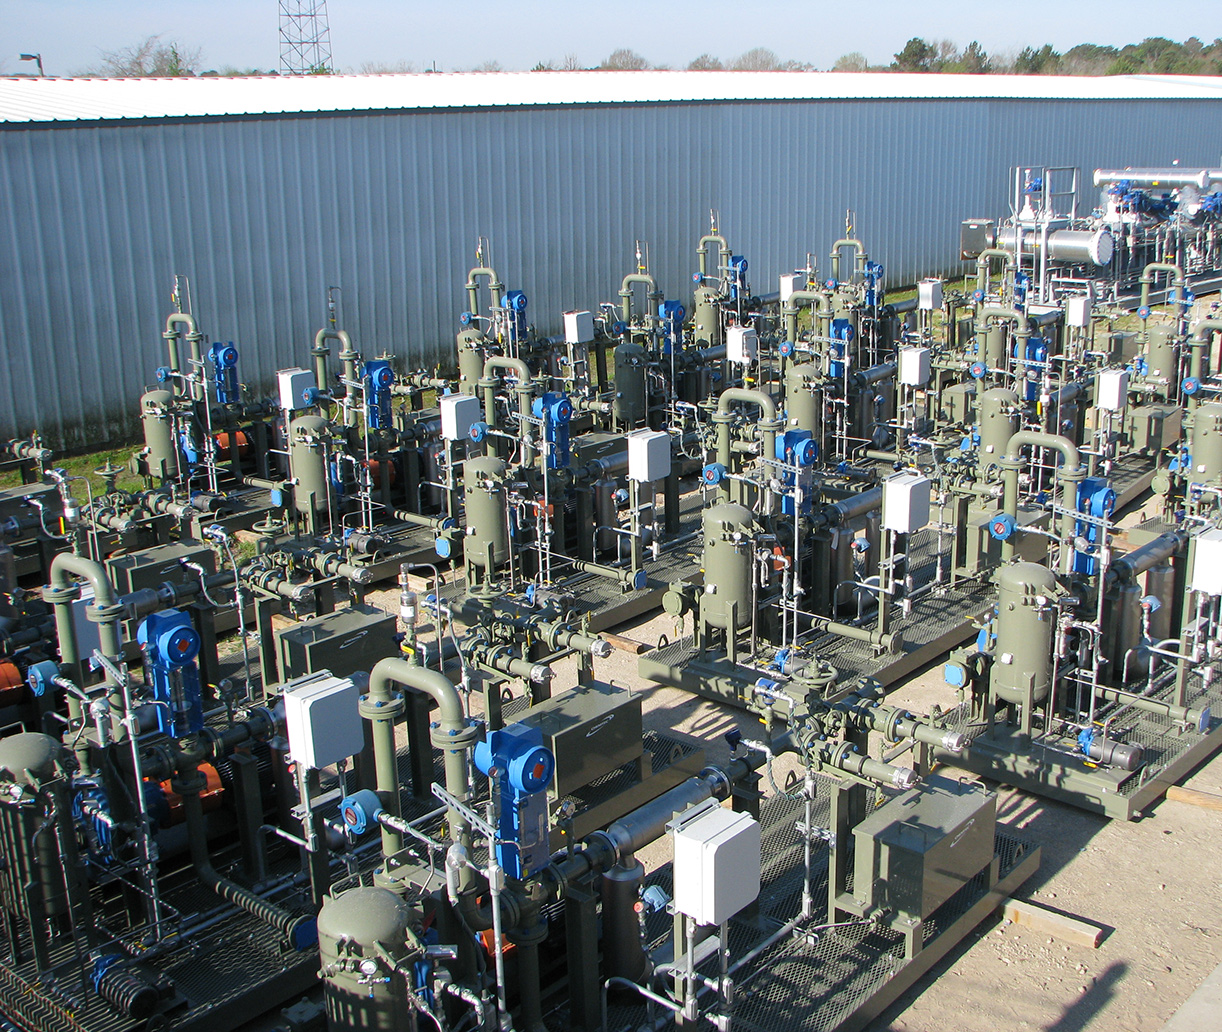 Metering, Sampling and Injection Systems for Upstream, Midstream and Downstream Applications